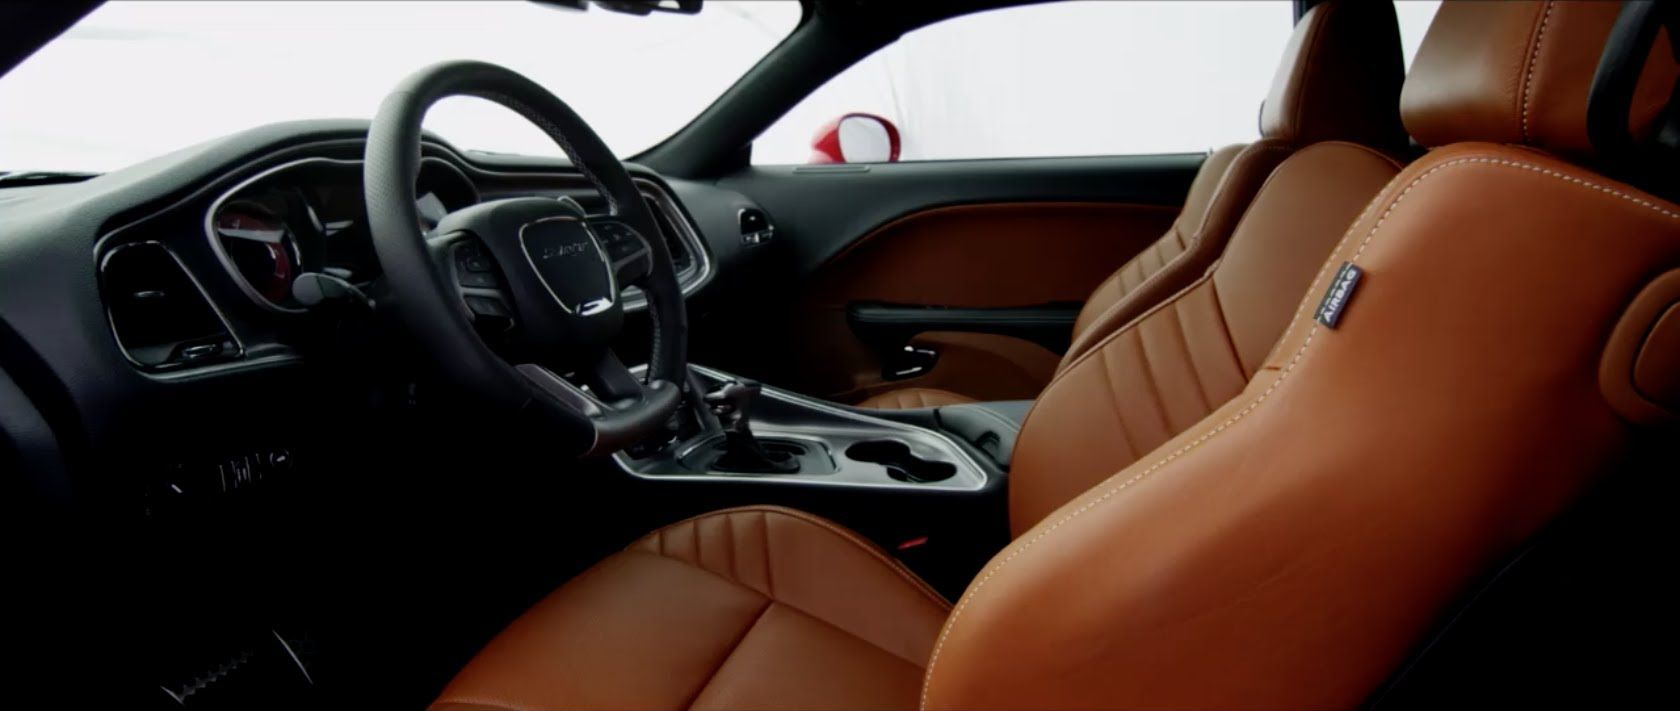 2015 Dodge Challenger Srt Hellcat Interior Technology And Design